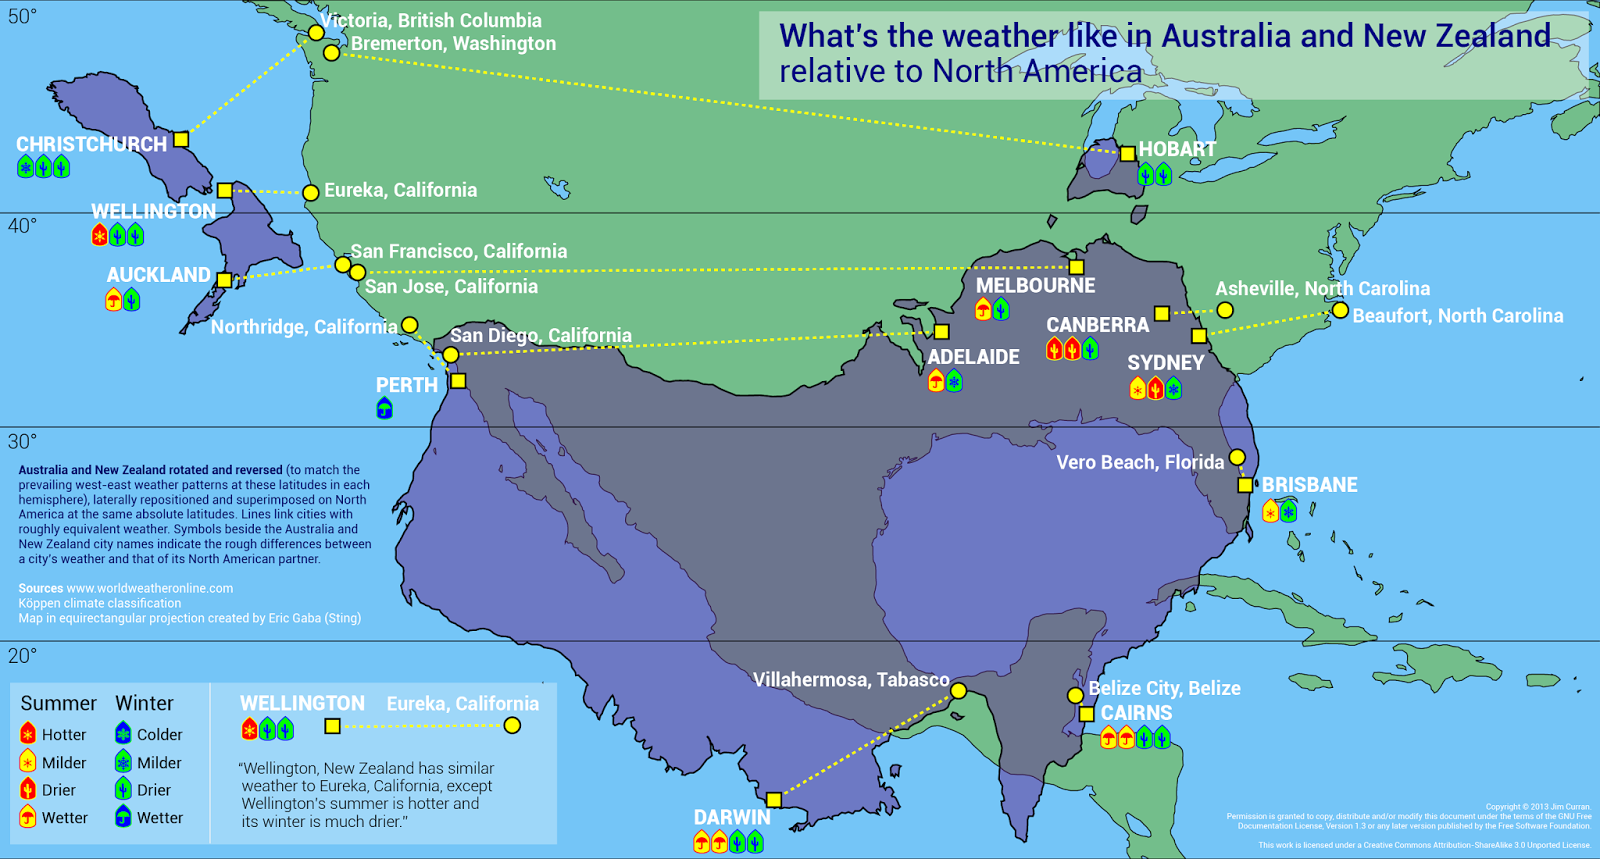 What's the weather like in Australia & New Zealand relative to North America